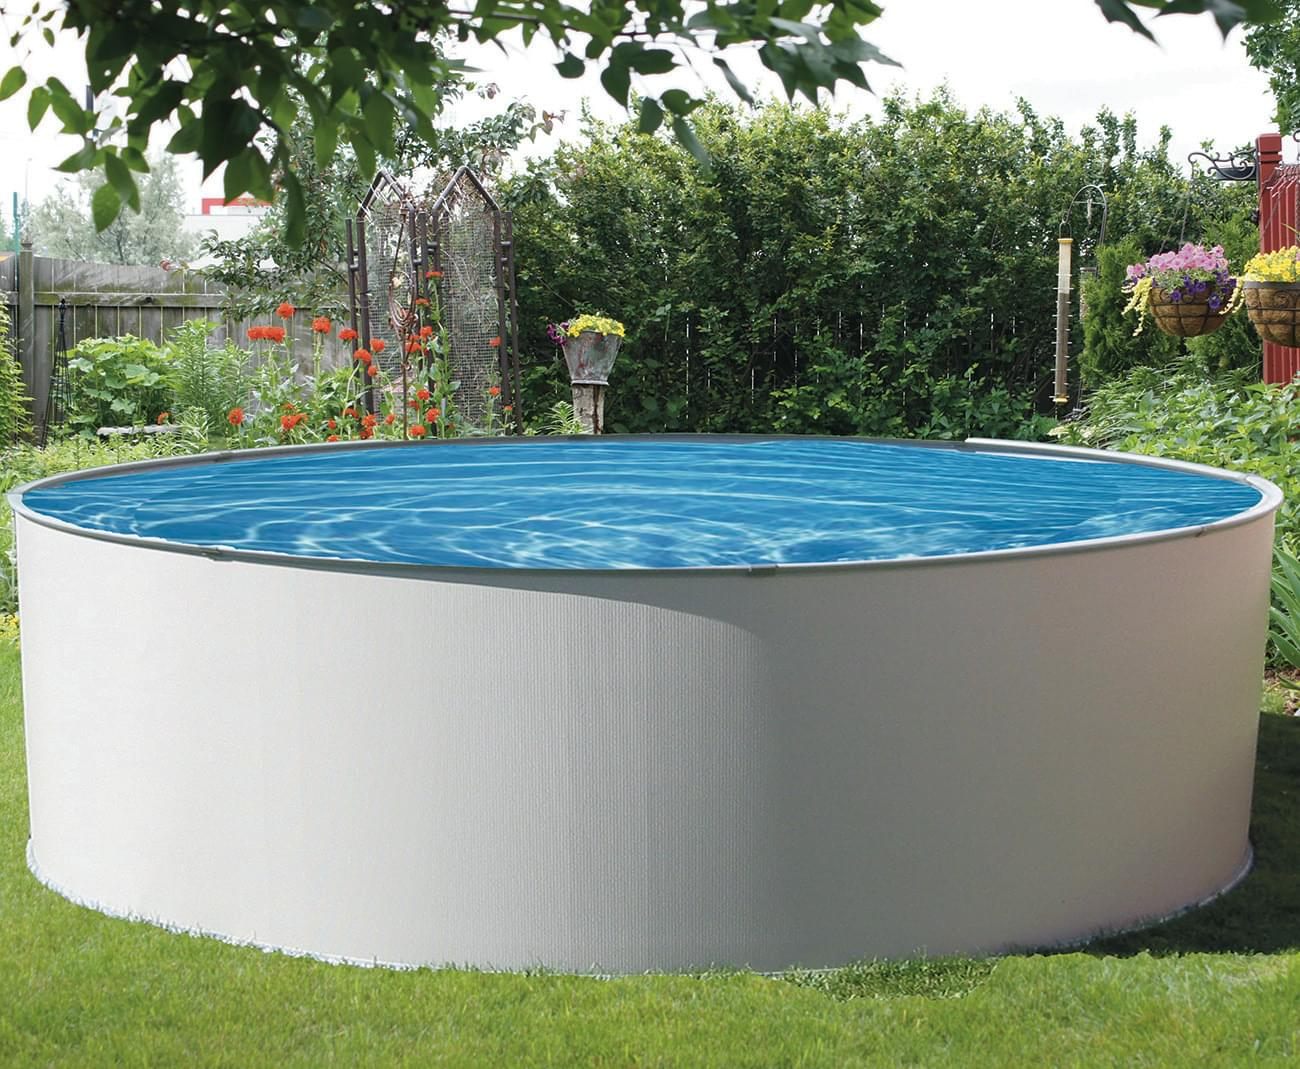 Simplicity 12 round above ground pool pool supplies canada for Club piscine above ground pools prices